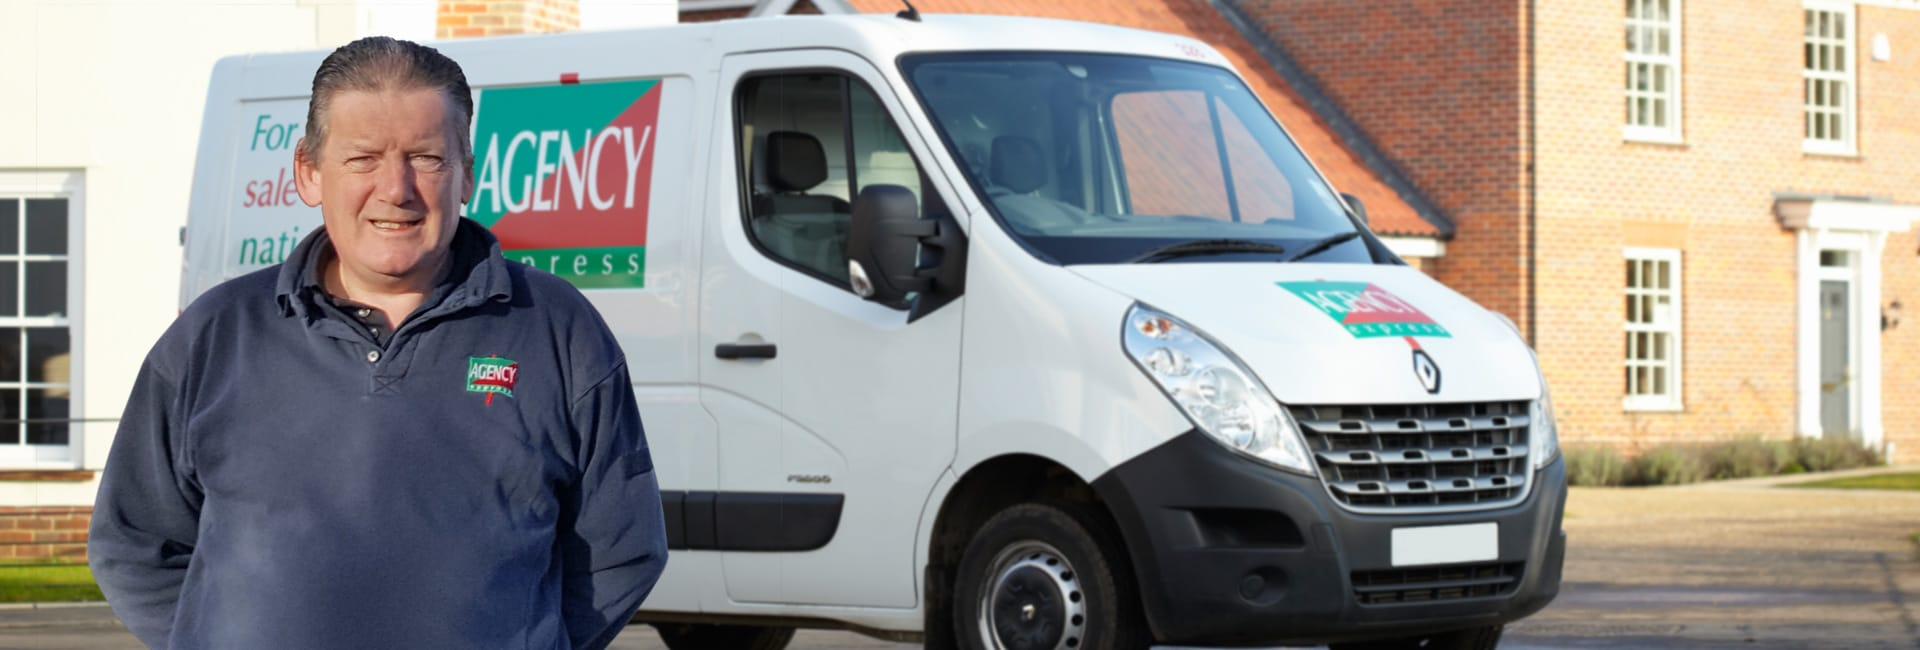 Agency Express franchise case study. Franchisee Peter Waters with van.